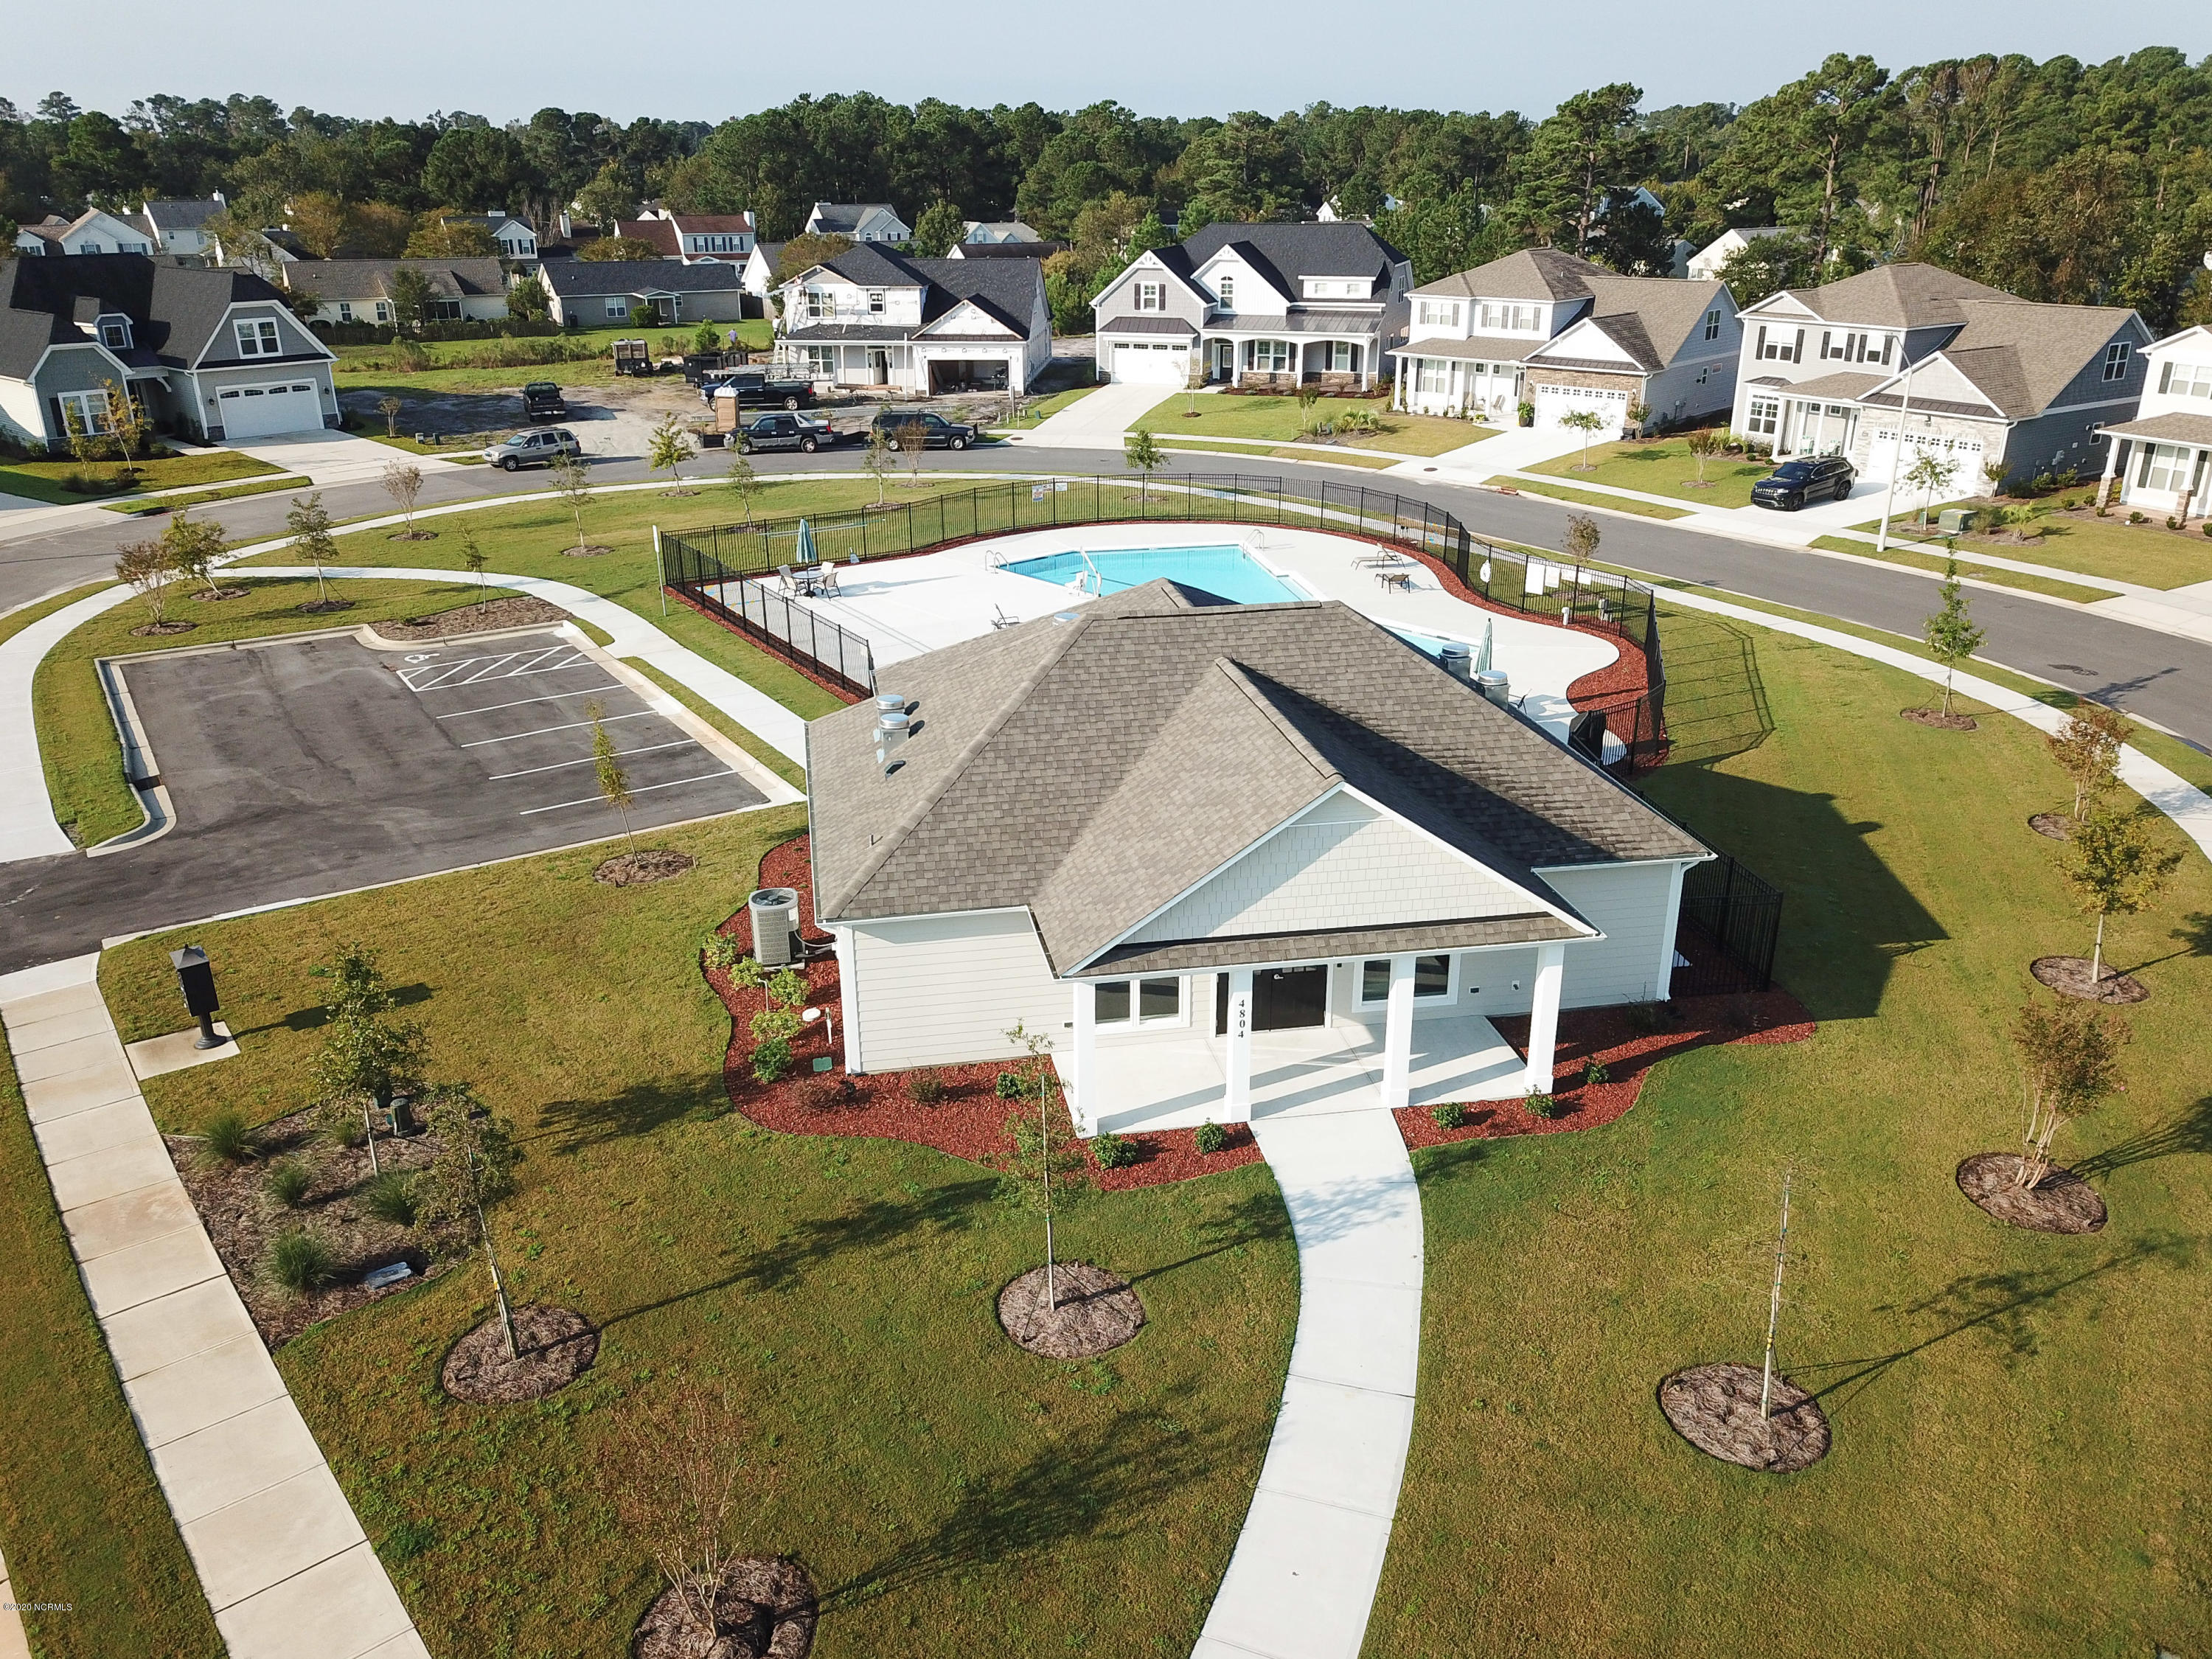 5273 Trumpet Vine Way, Wilmington, North Carolina 28412, 3 Bedrooms Bedrooms, 7 Rooms Rooms,2 BathroomsBathrooms,Single family residence,For sale,Trumpet Vine,100214020